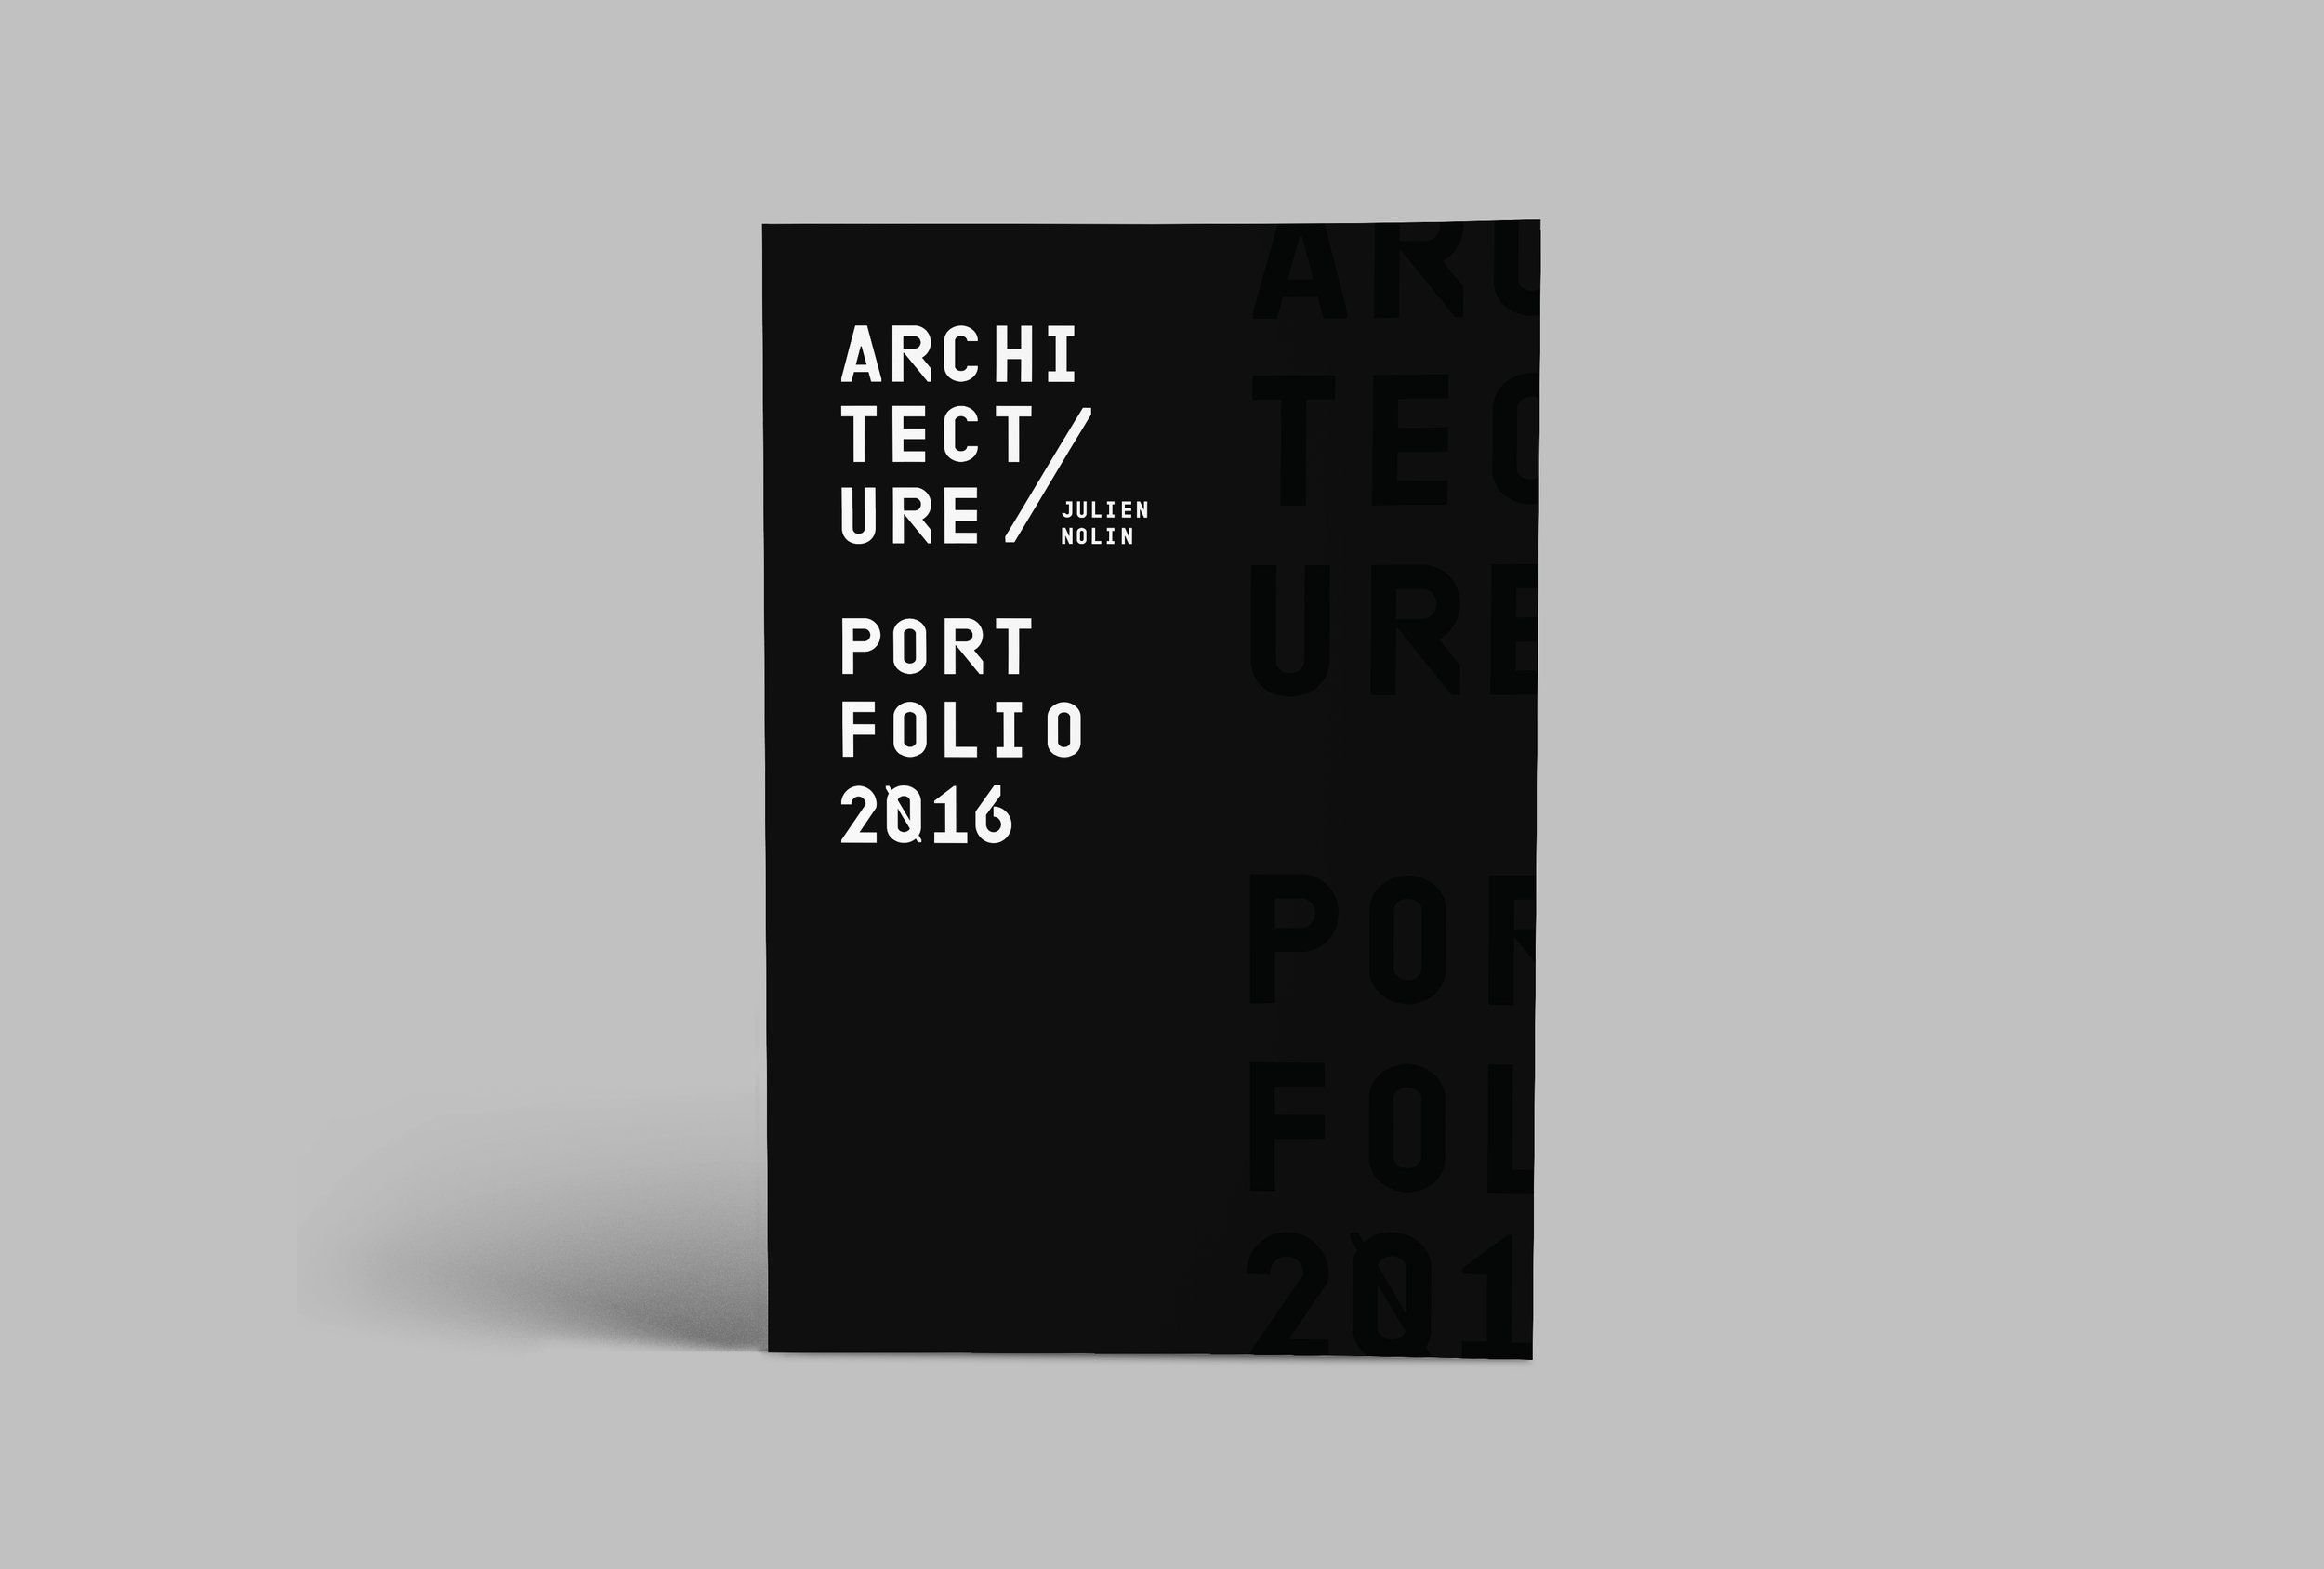 julien nolin architecture portfolio cover screenshots